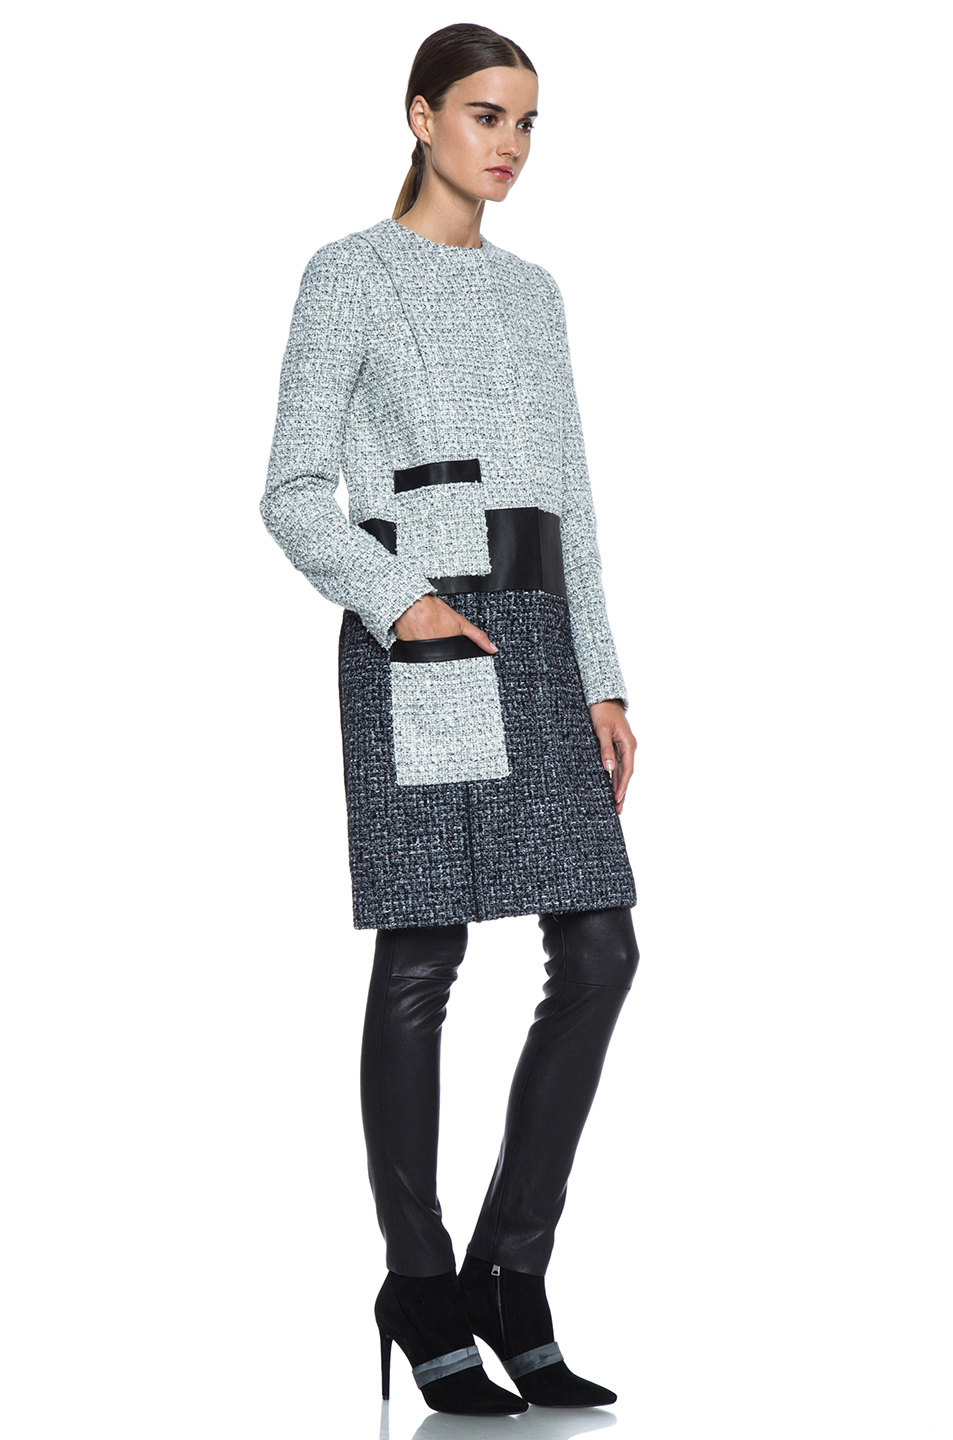 Proenza Schouler|Tweed Collarless Coat in Ecru & Black